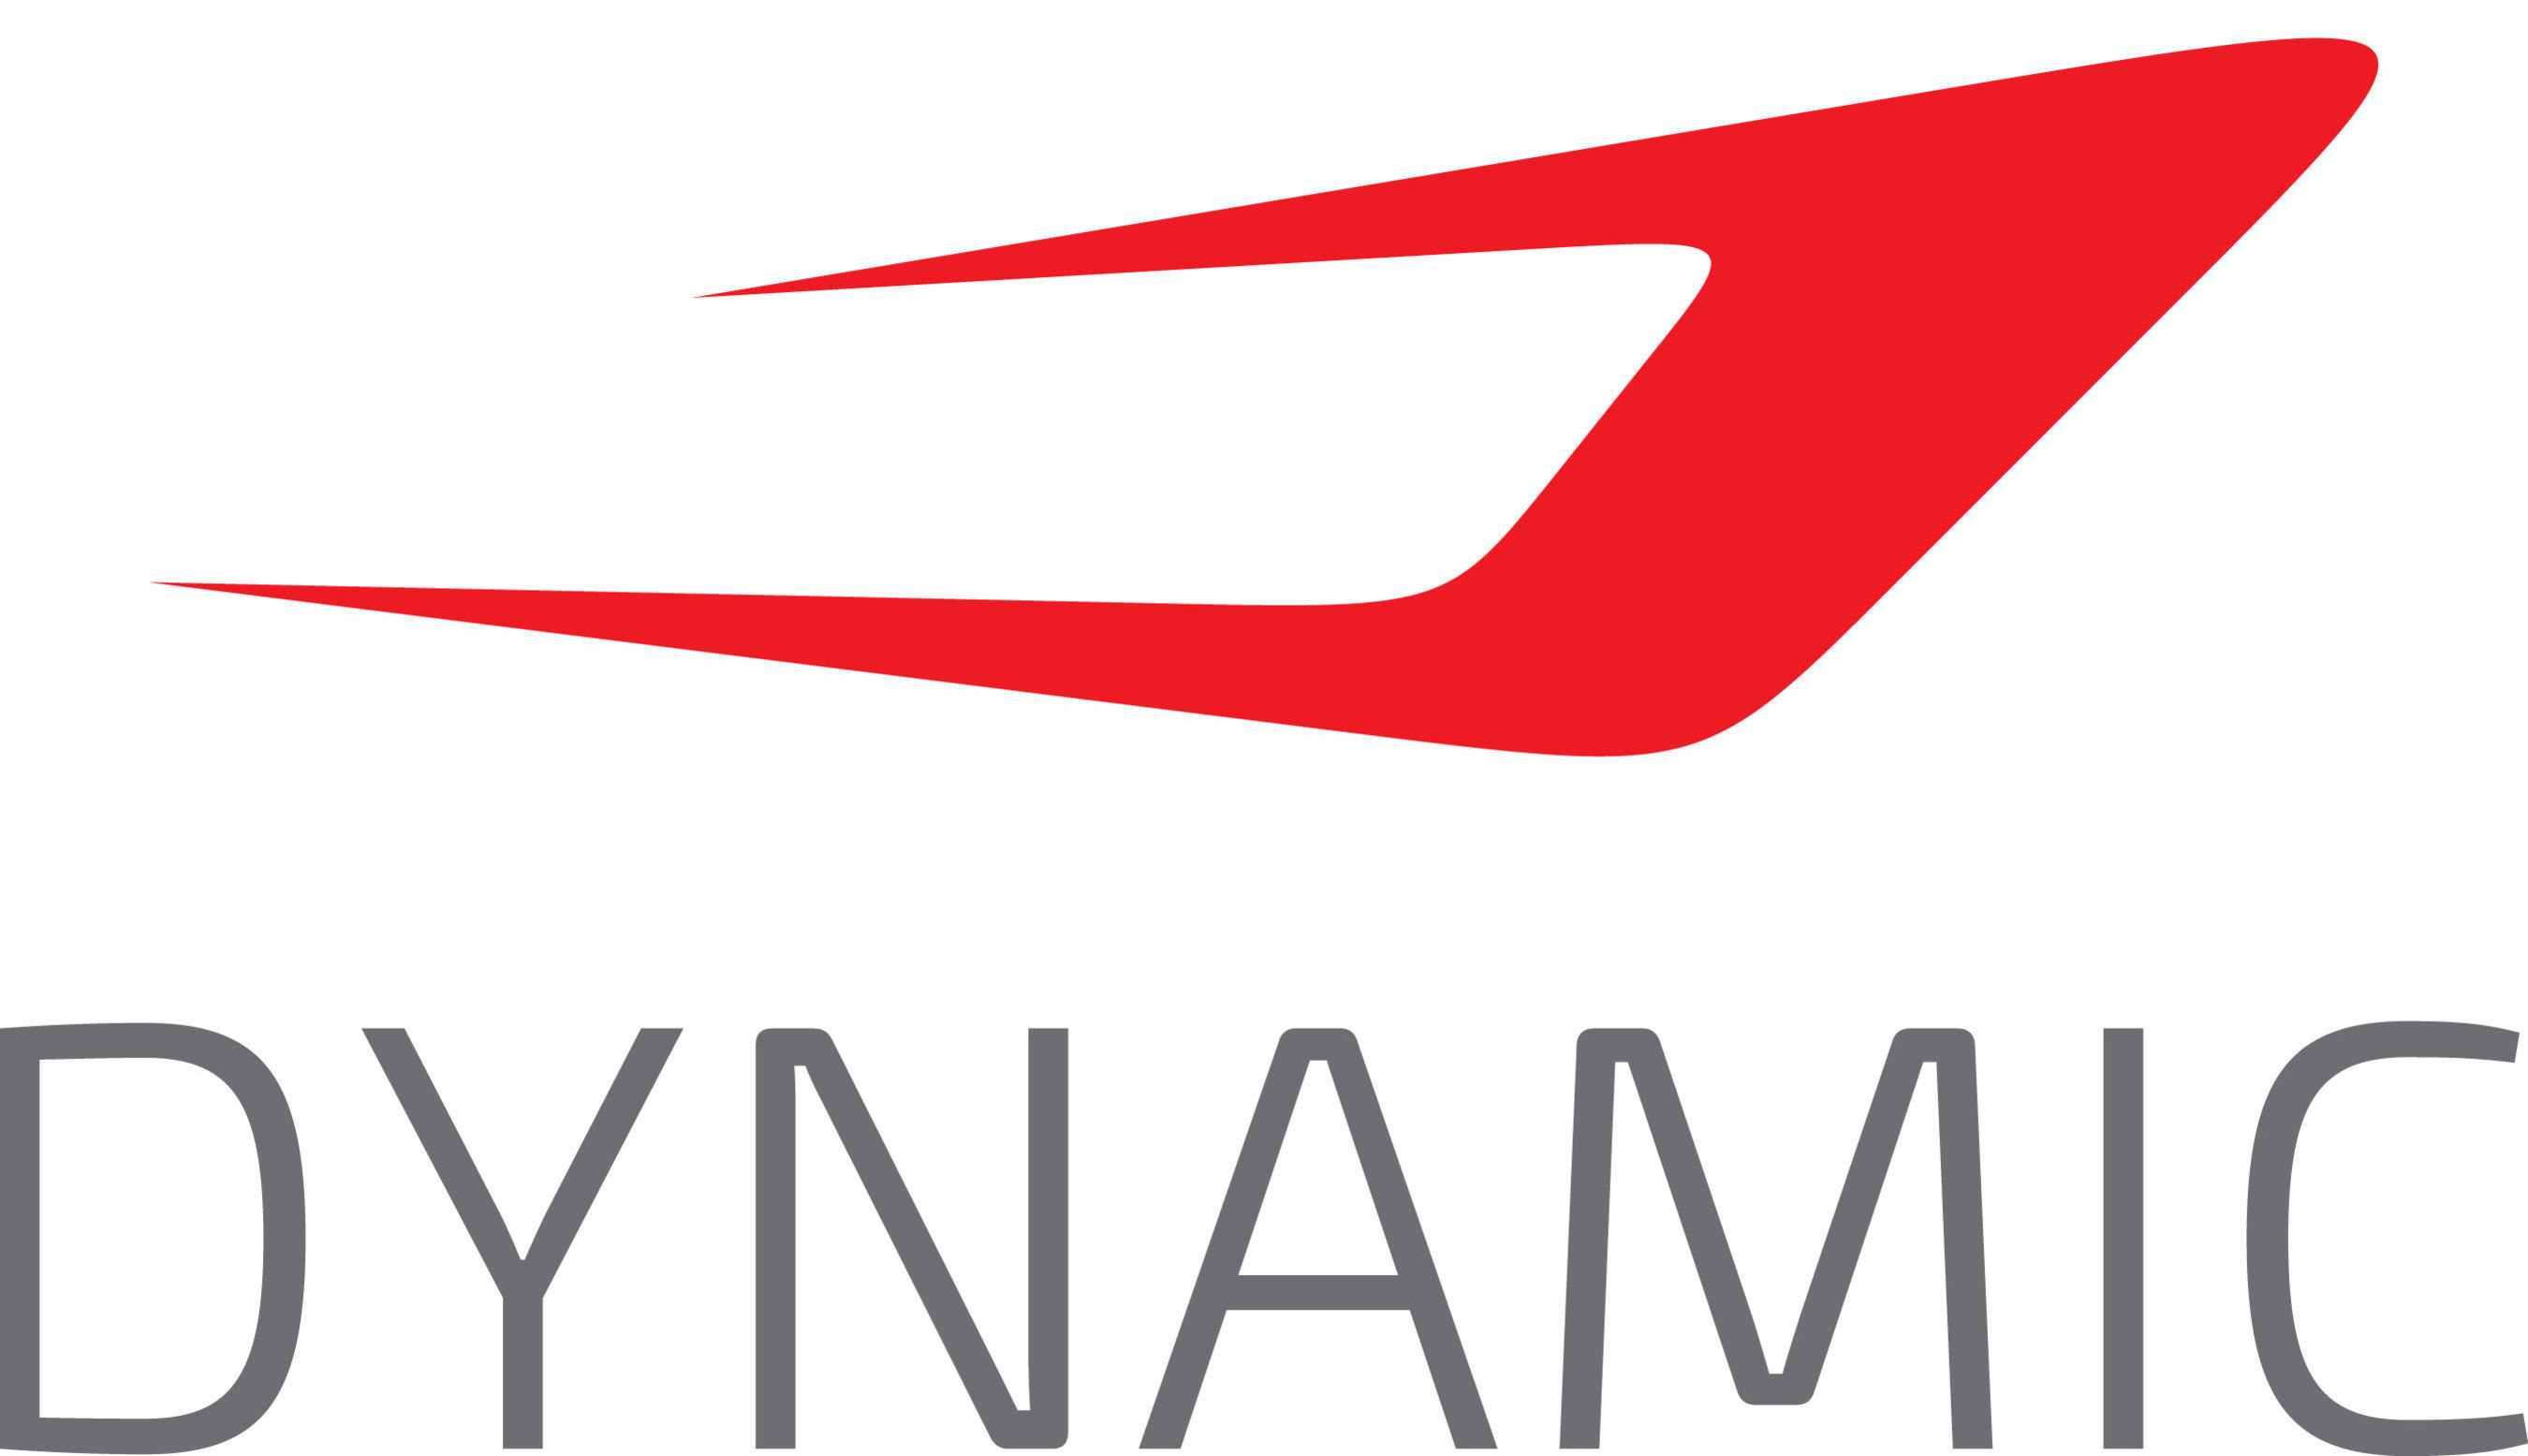 "Dynamic International Airways LLC is a US Certificated FAR PART 121 AIR CARRIER providing safe, affordable, long haul, point-to-point air service. Airline is headquartered in Greensboro, NC and offers service from airports in New York, Guyana, Florida, Venezuela, Hong Kong, Palau with its fleet of B767 wide body aircrafts. Recently company has added ""International"" in its official name as reflection of its transition into international long haul carrier while focusing on Dynamic as its brand."